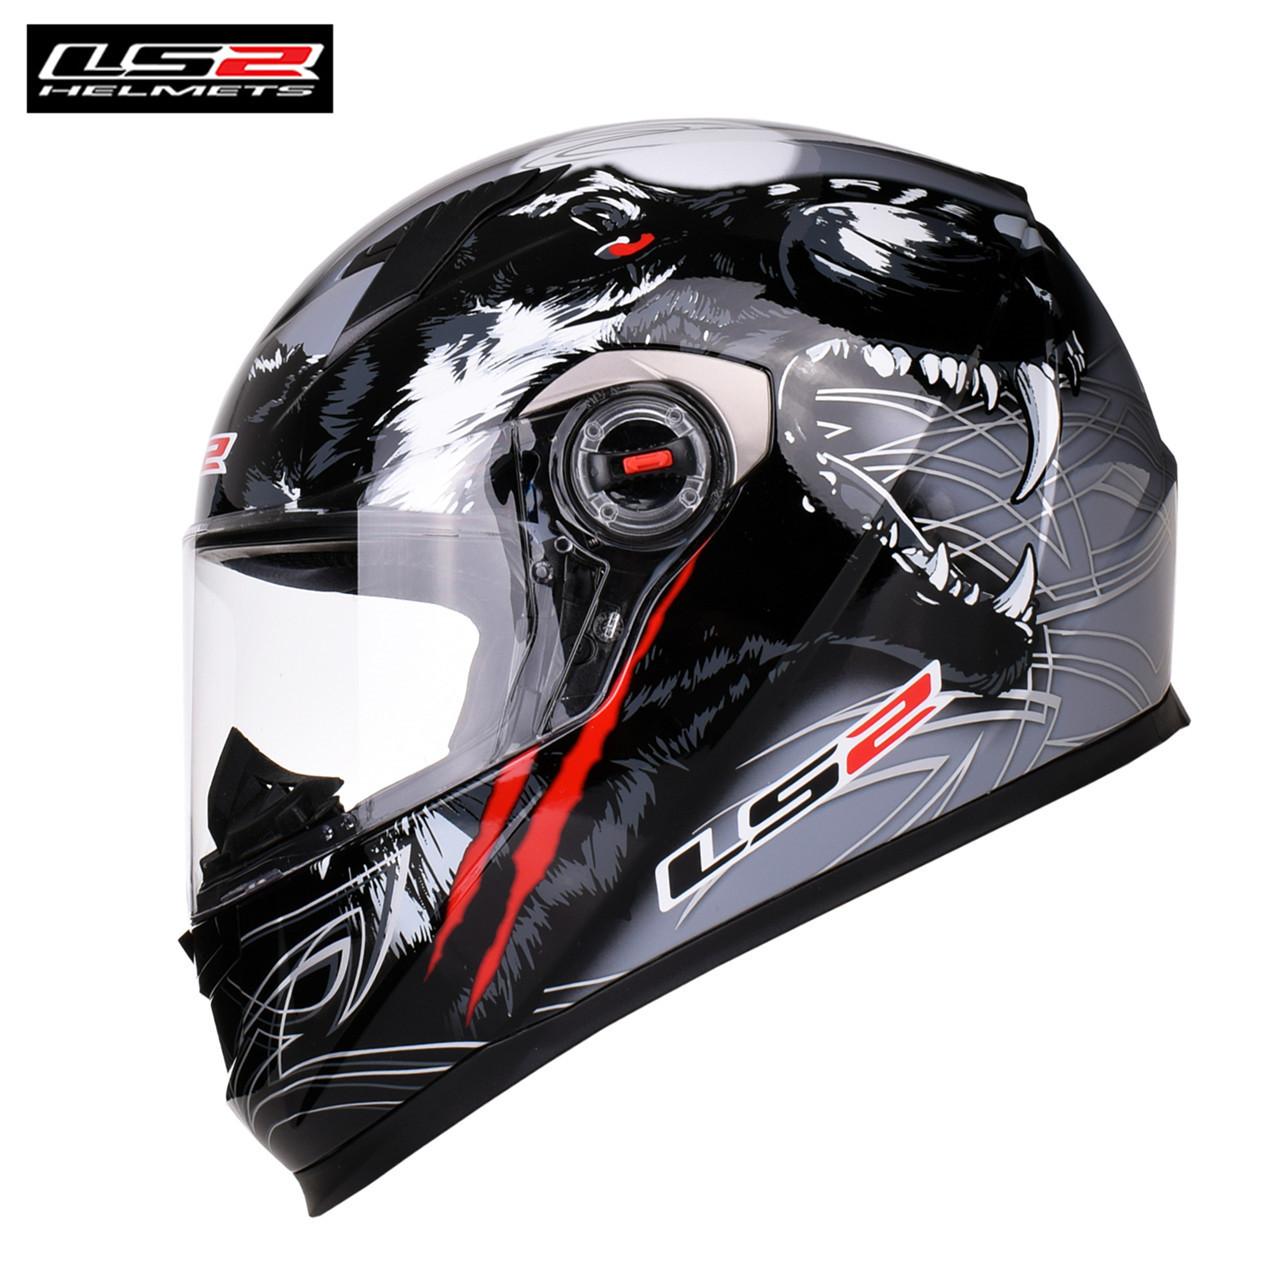 Capacete LS2 Motorcycle Helmet Full Face FF358 Racing Casco Moto Casque Motor Helm Many Colors original ls2 ff358 full face motorcycle helmet hjelm helma capacete casque moto ls2 high quality helm ece approved no pump